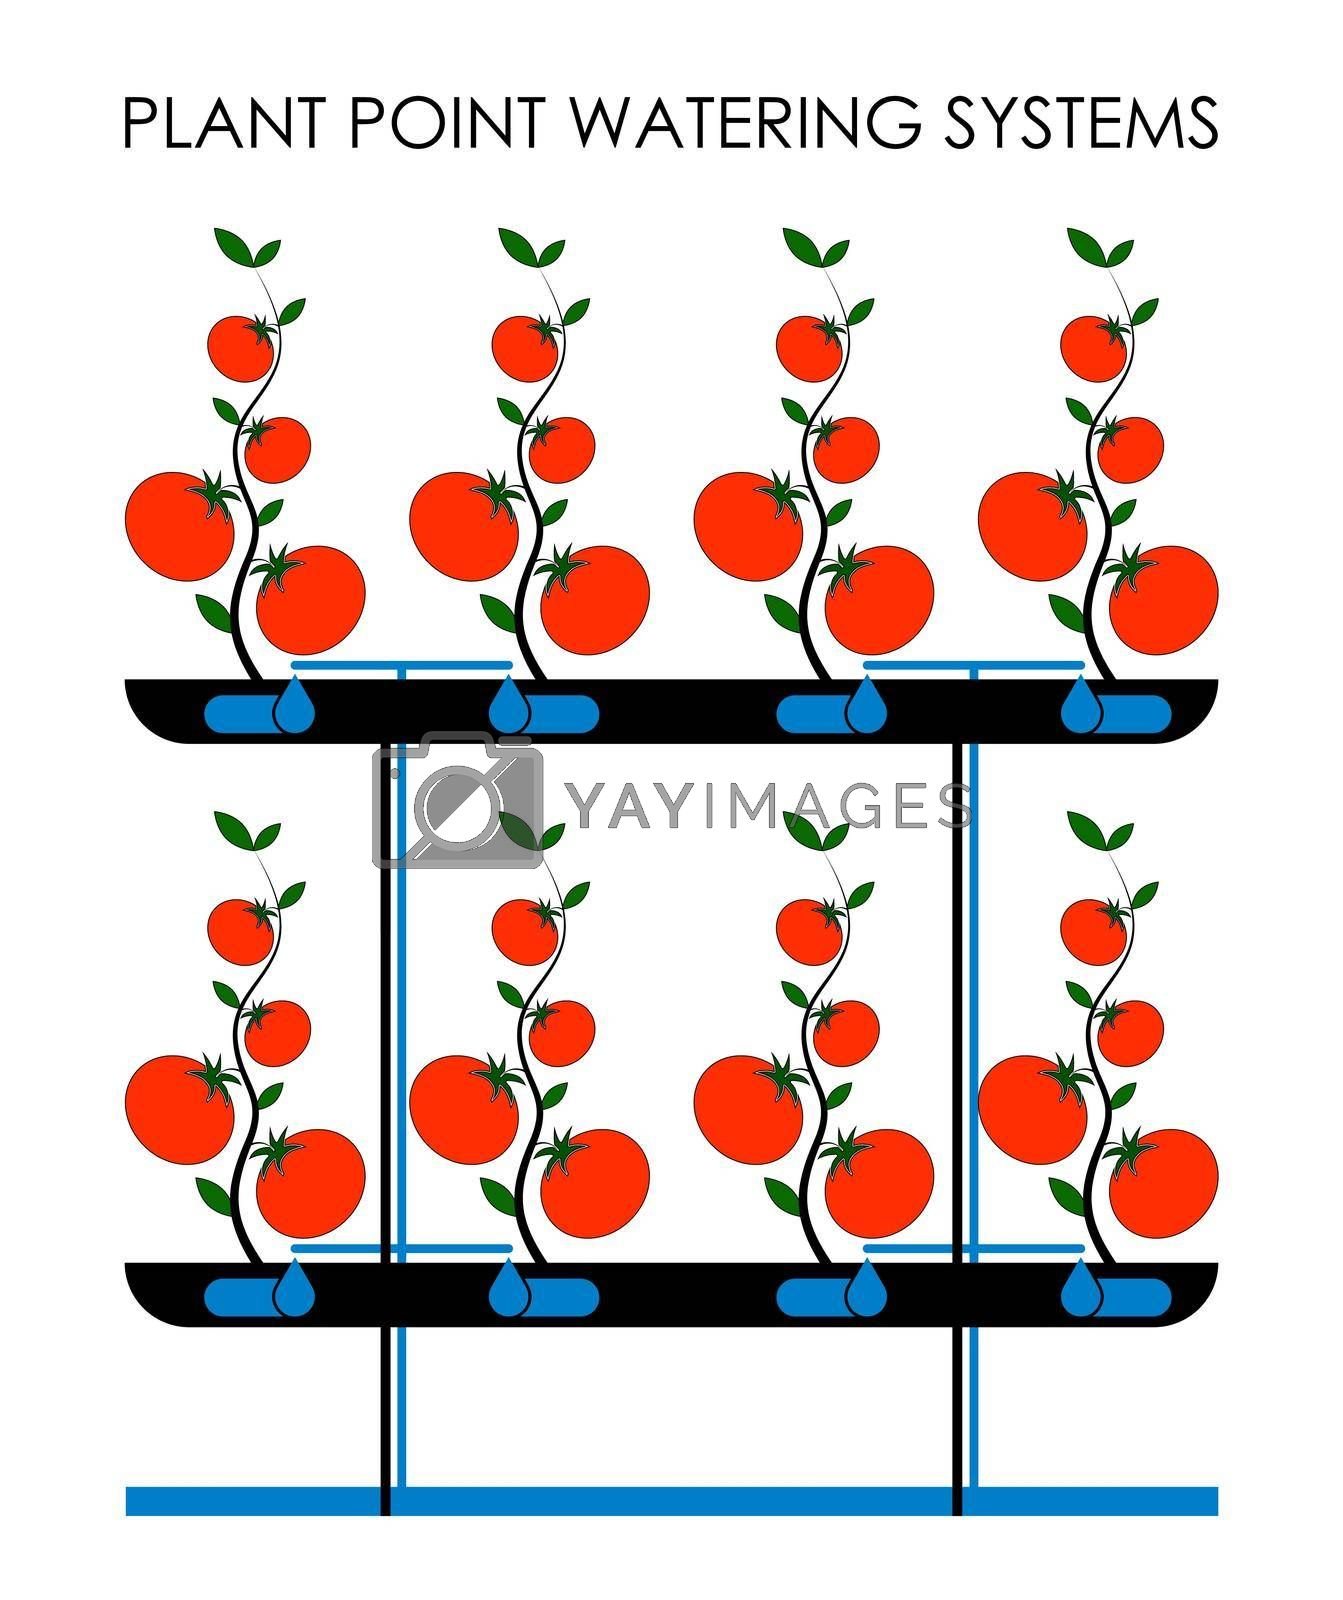 system of spot irrigation of plants in a greenhouse. Efficient farming, green technology. Isolated vector on white background